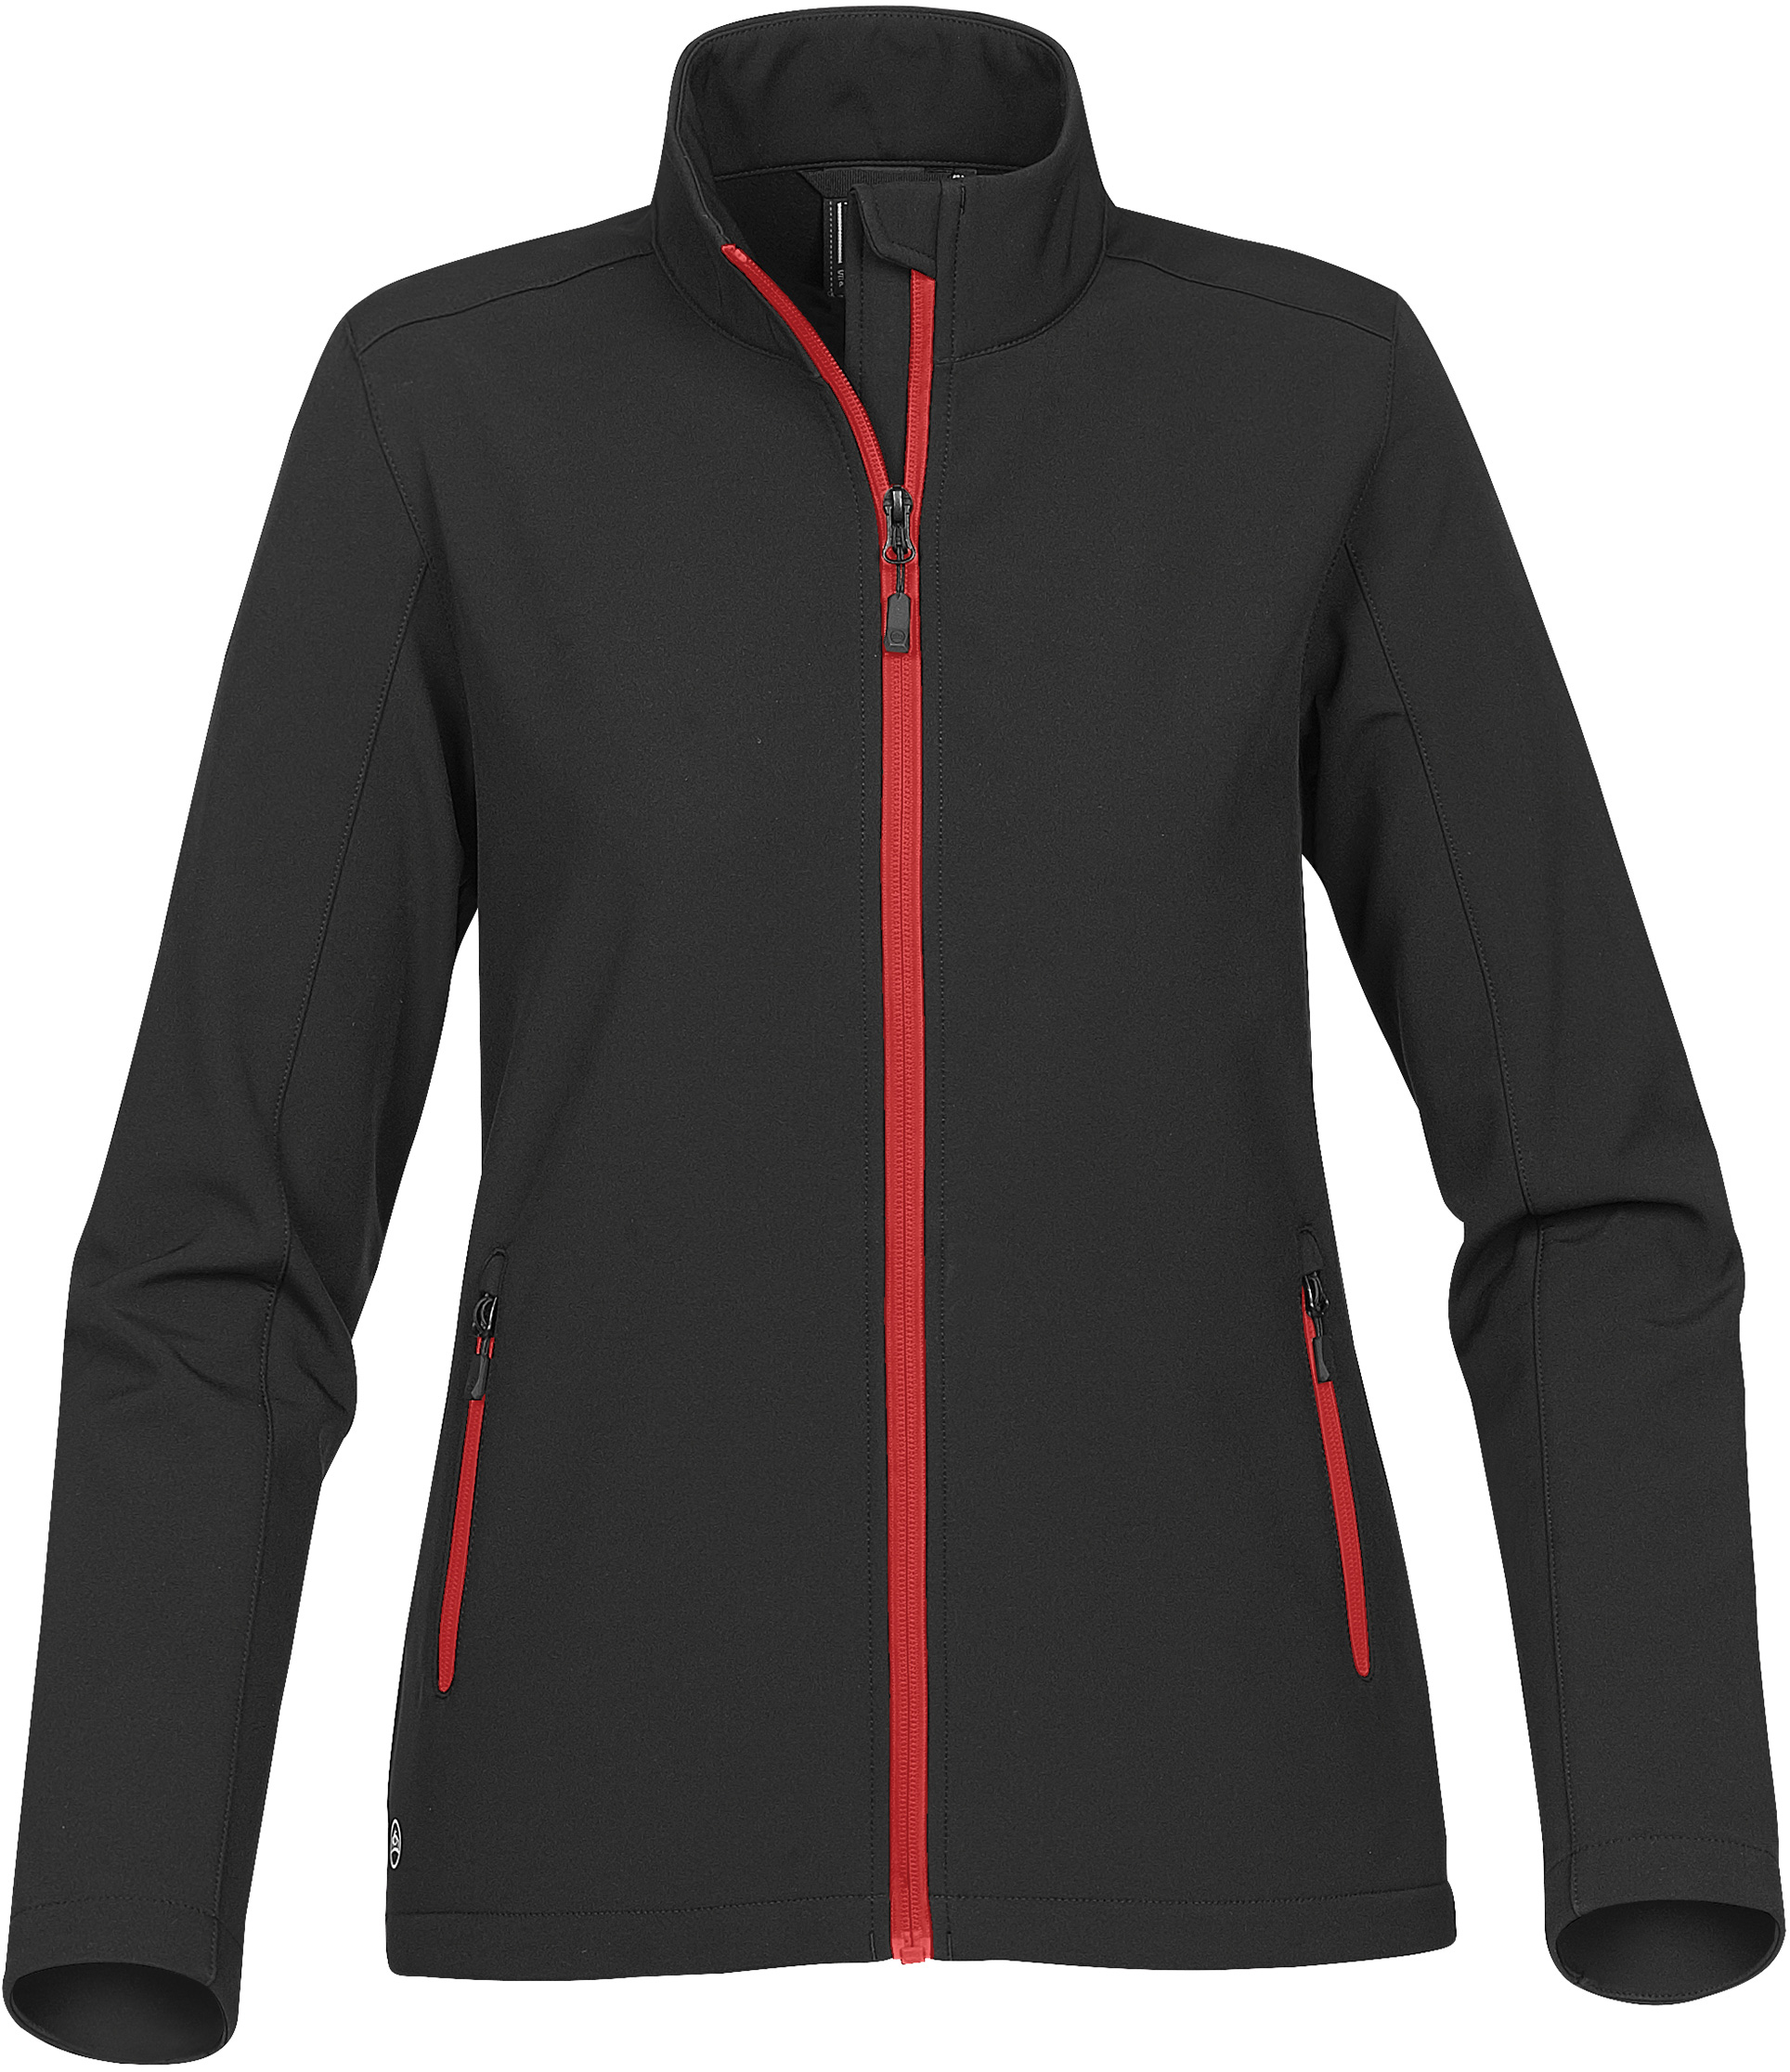 Stormtech KSB-1W - Women's Orbiter Softshell Jacket